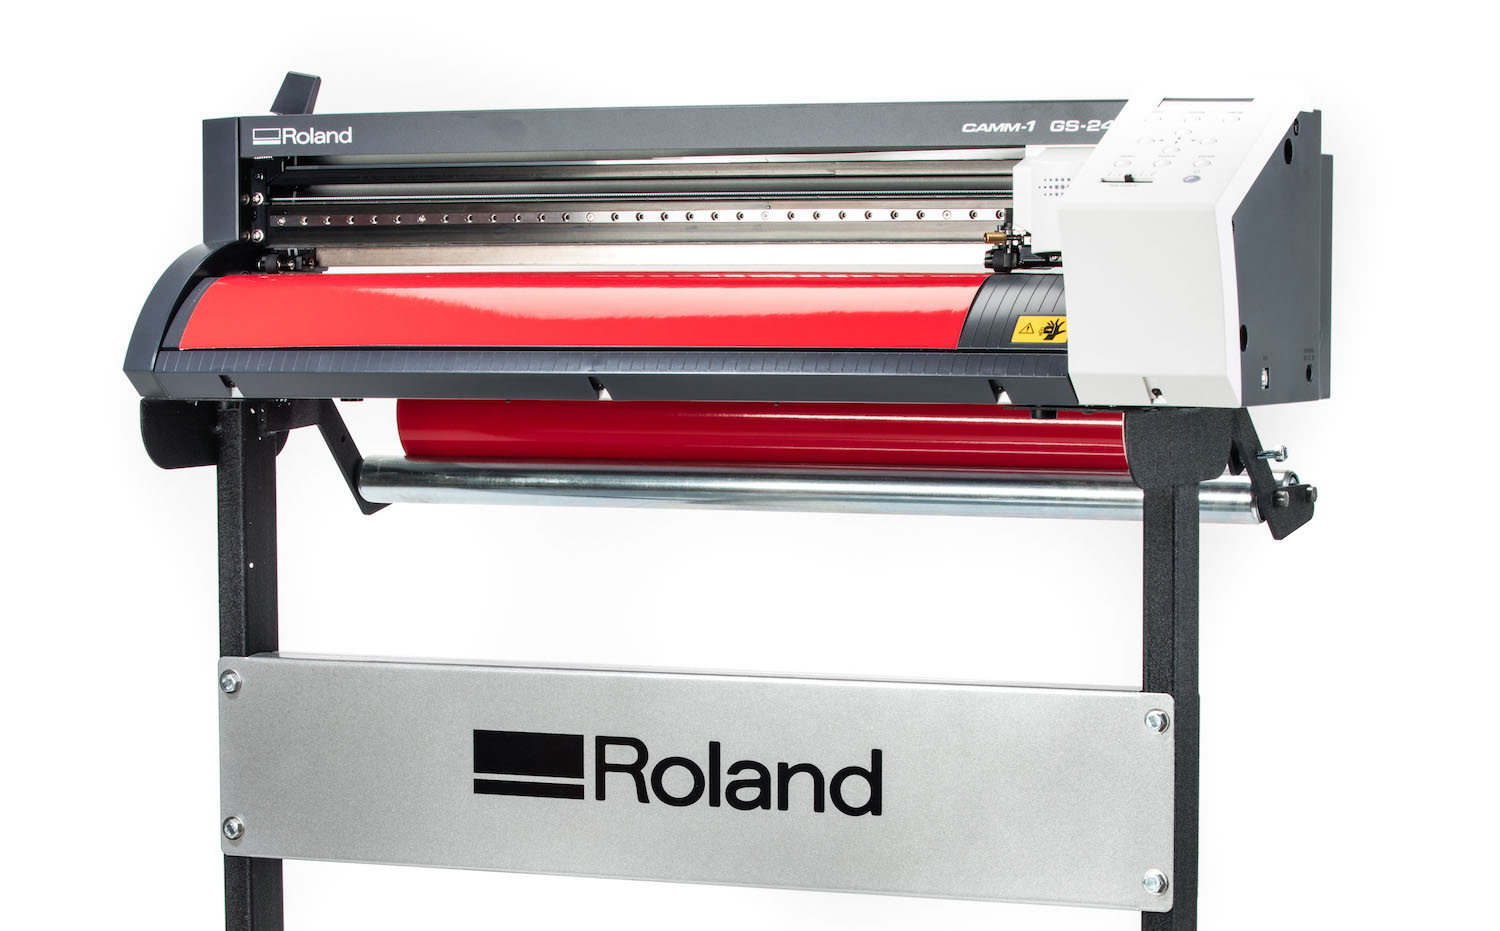 Review: Roland's CAMM-1 GS-24 Is a Robust Machine Despite Difficult Software